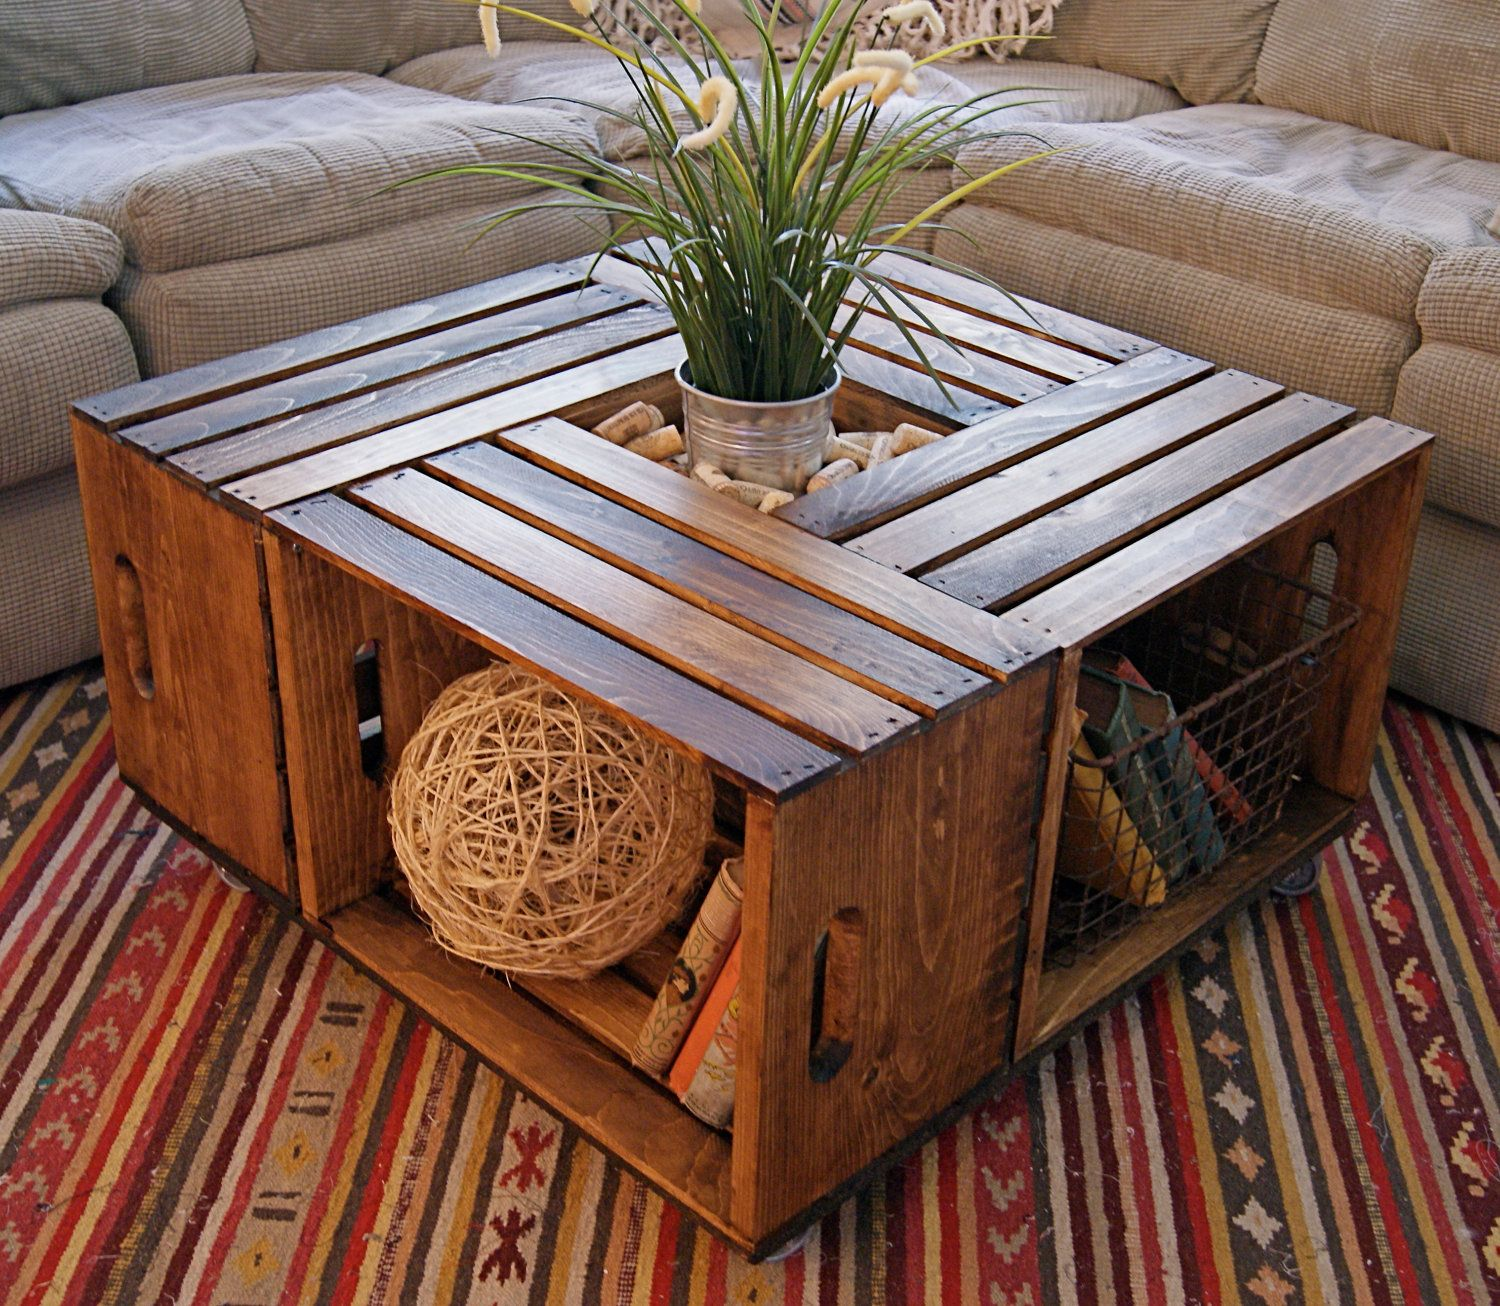 Made from crates bought at michaels crafts organization while we sure do love us some pallet coffee tables perhaps your living room calls for something a bit smaller this wine crate coffee table is just the geotapseo Images